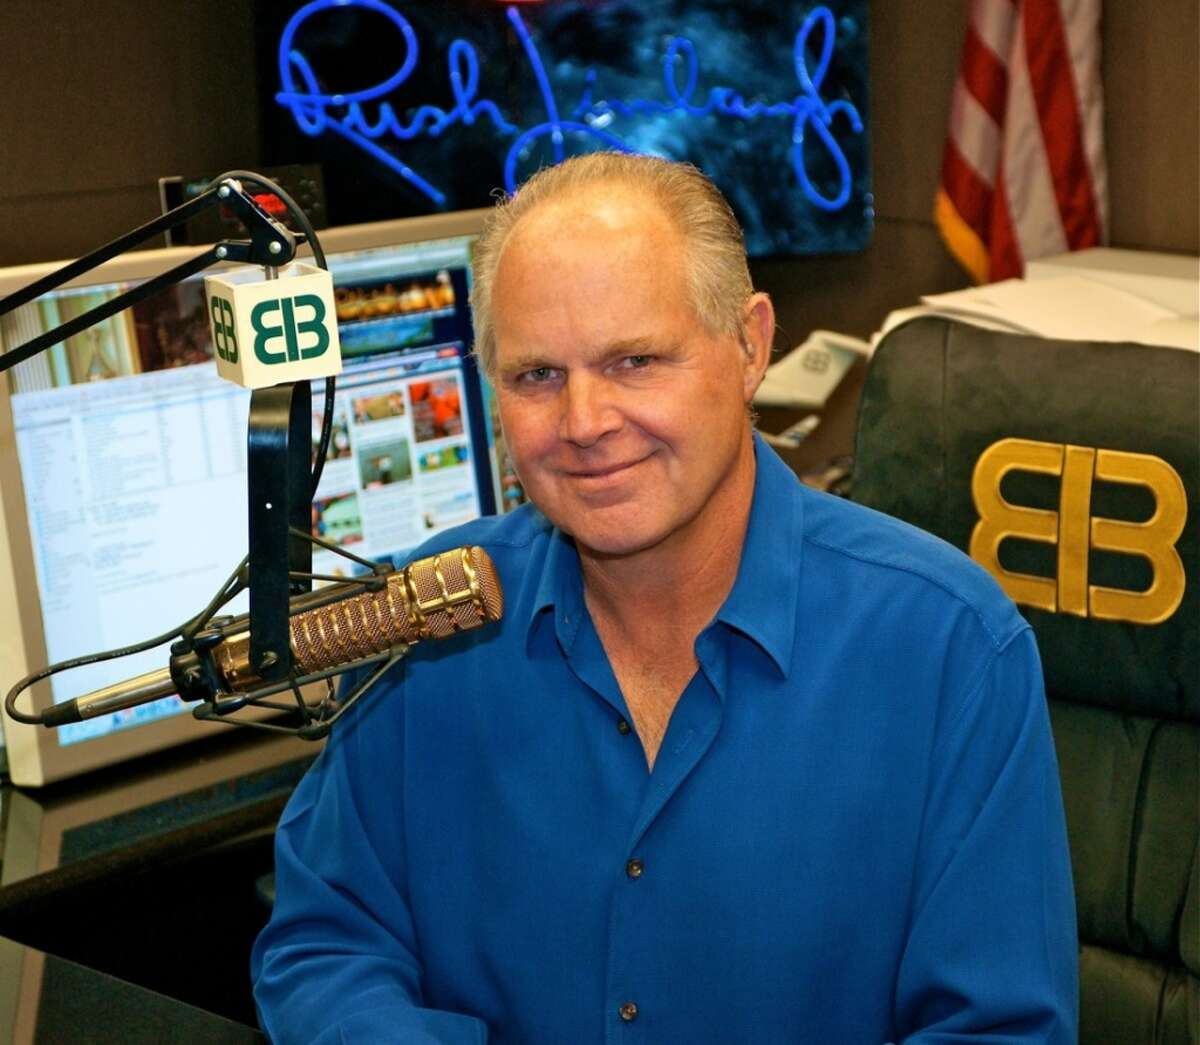 """Long before he called law student Sandra Fluke a """"slut"""" and a """"prostitute,"""" the conservative pundit has made often savage remarks about women, minorities and even the disabled. Here is a sampling of Limbaugh's other low moments."""